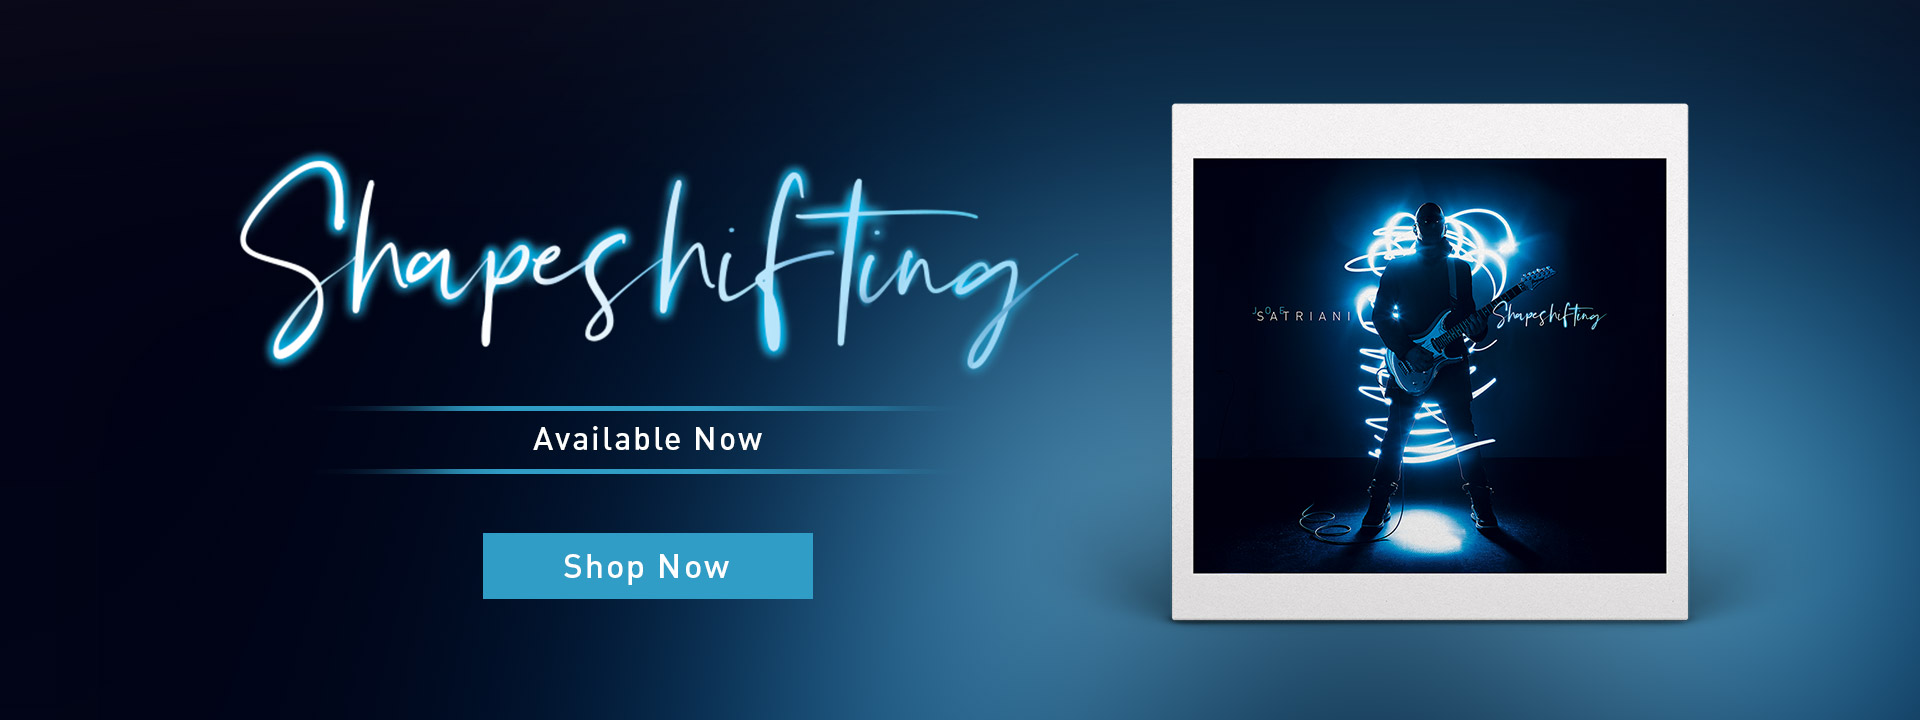 Joe Satriani | Shapeshifting | Order the new album and receive early access for the next US tour | Shop now!